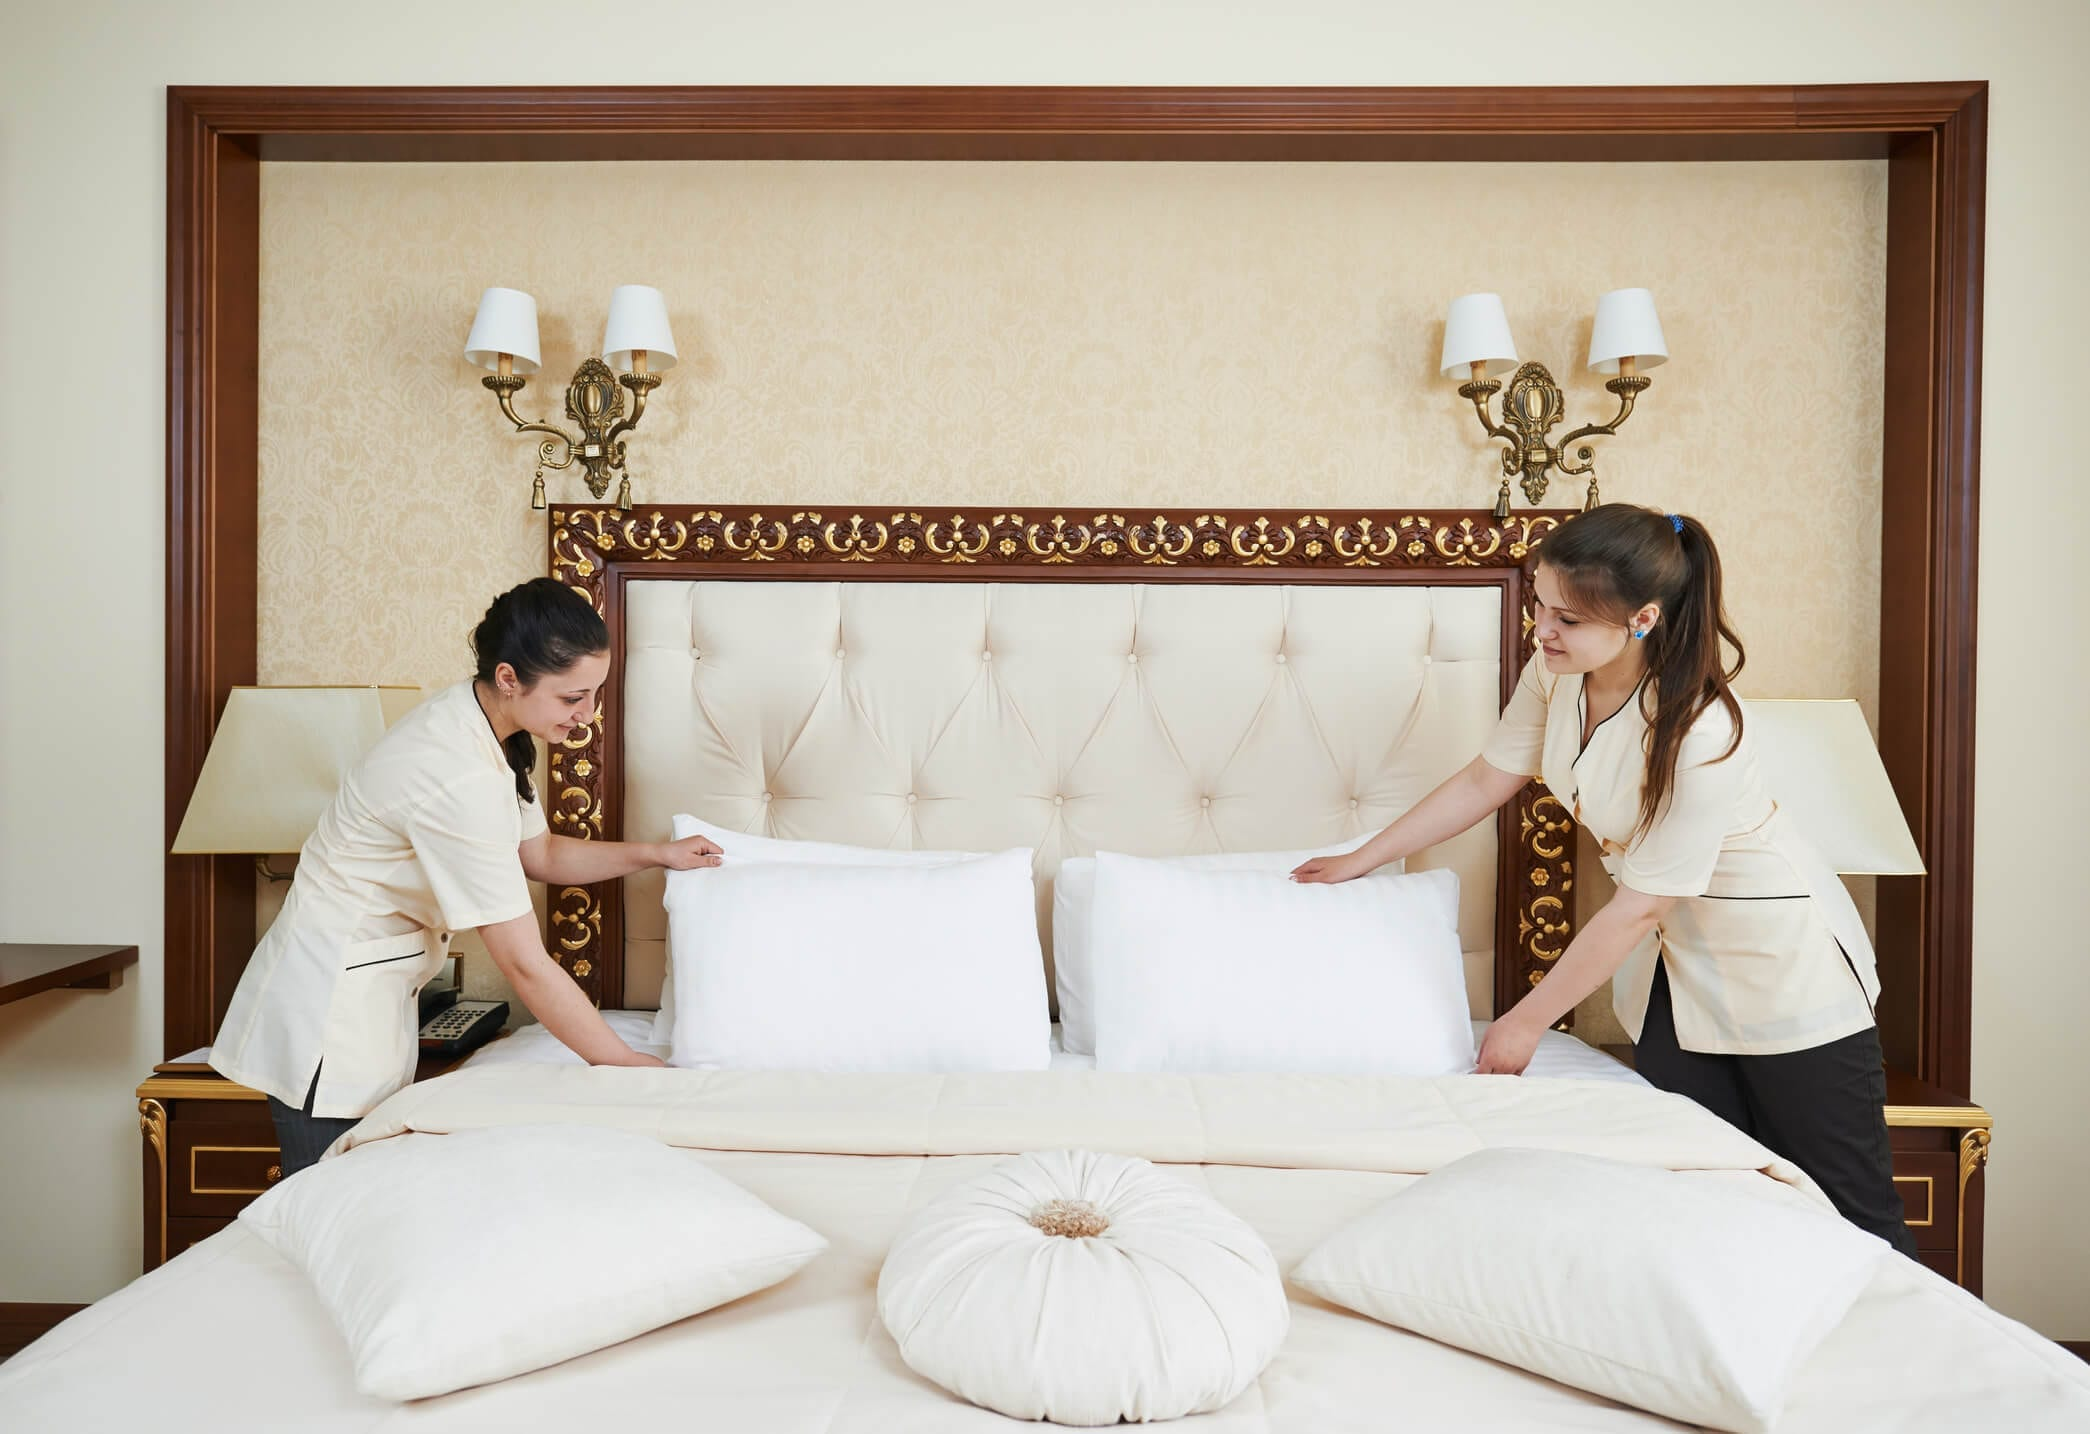 Two Women Making a Hotel Bed with Freshly Cleaned Sheets